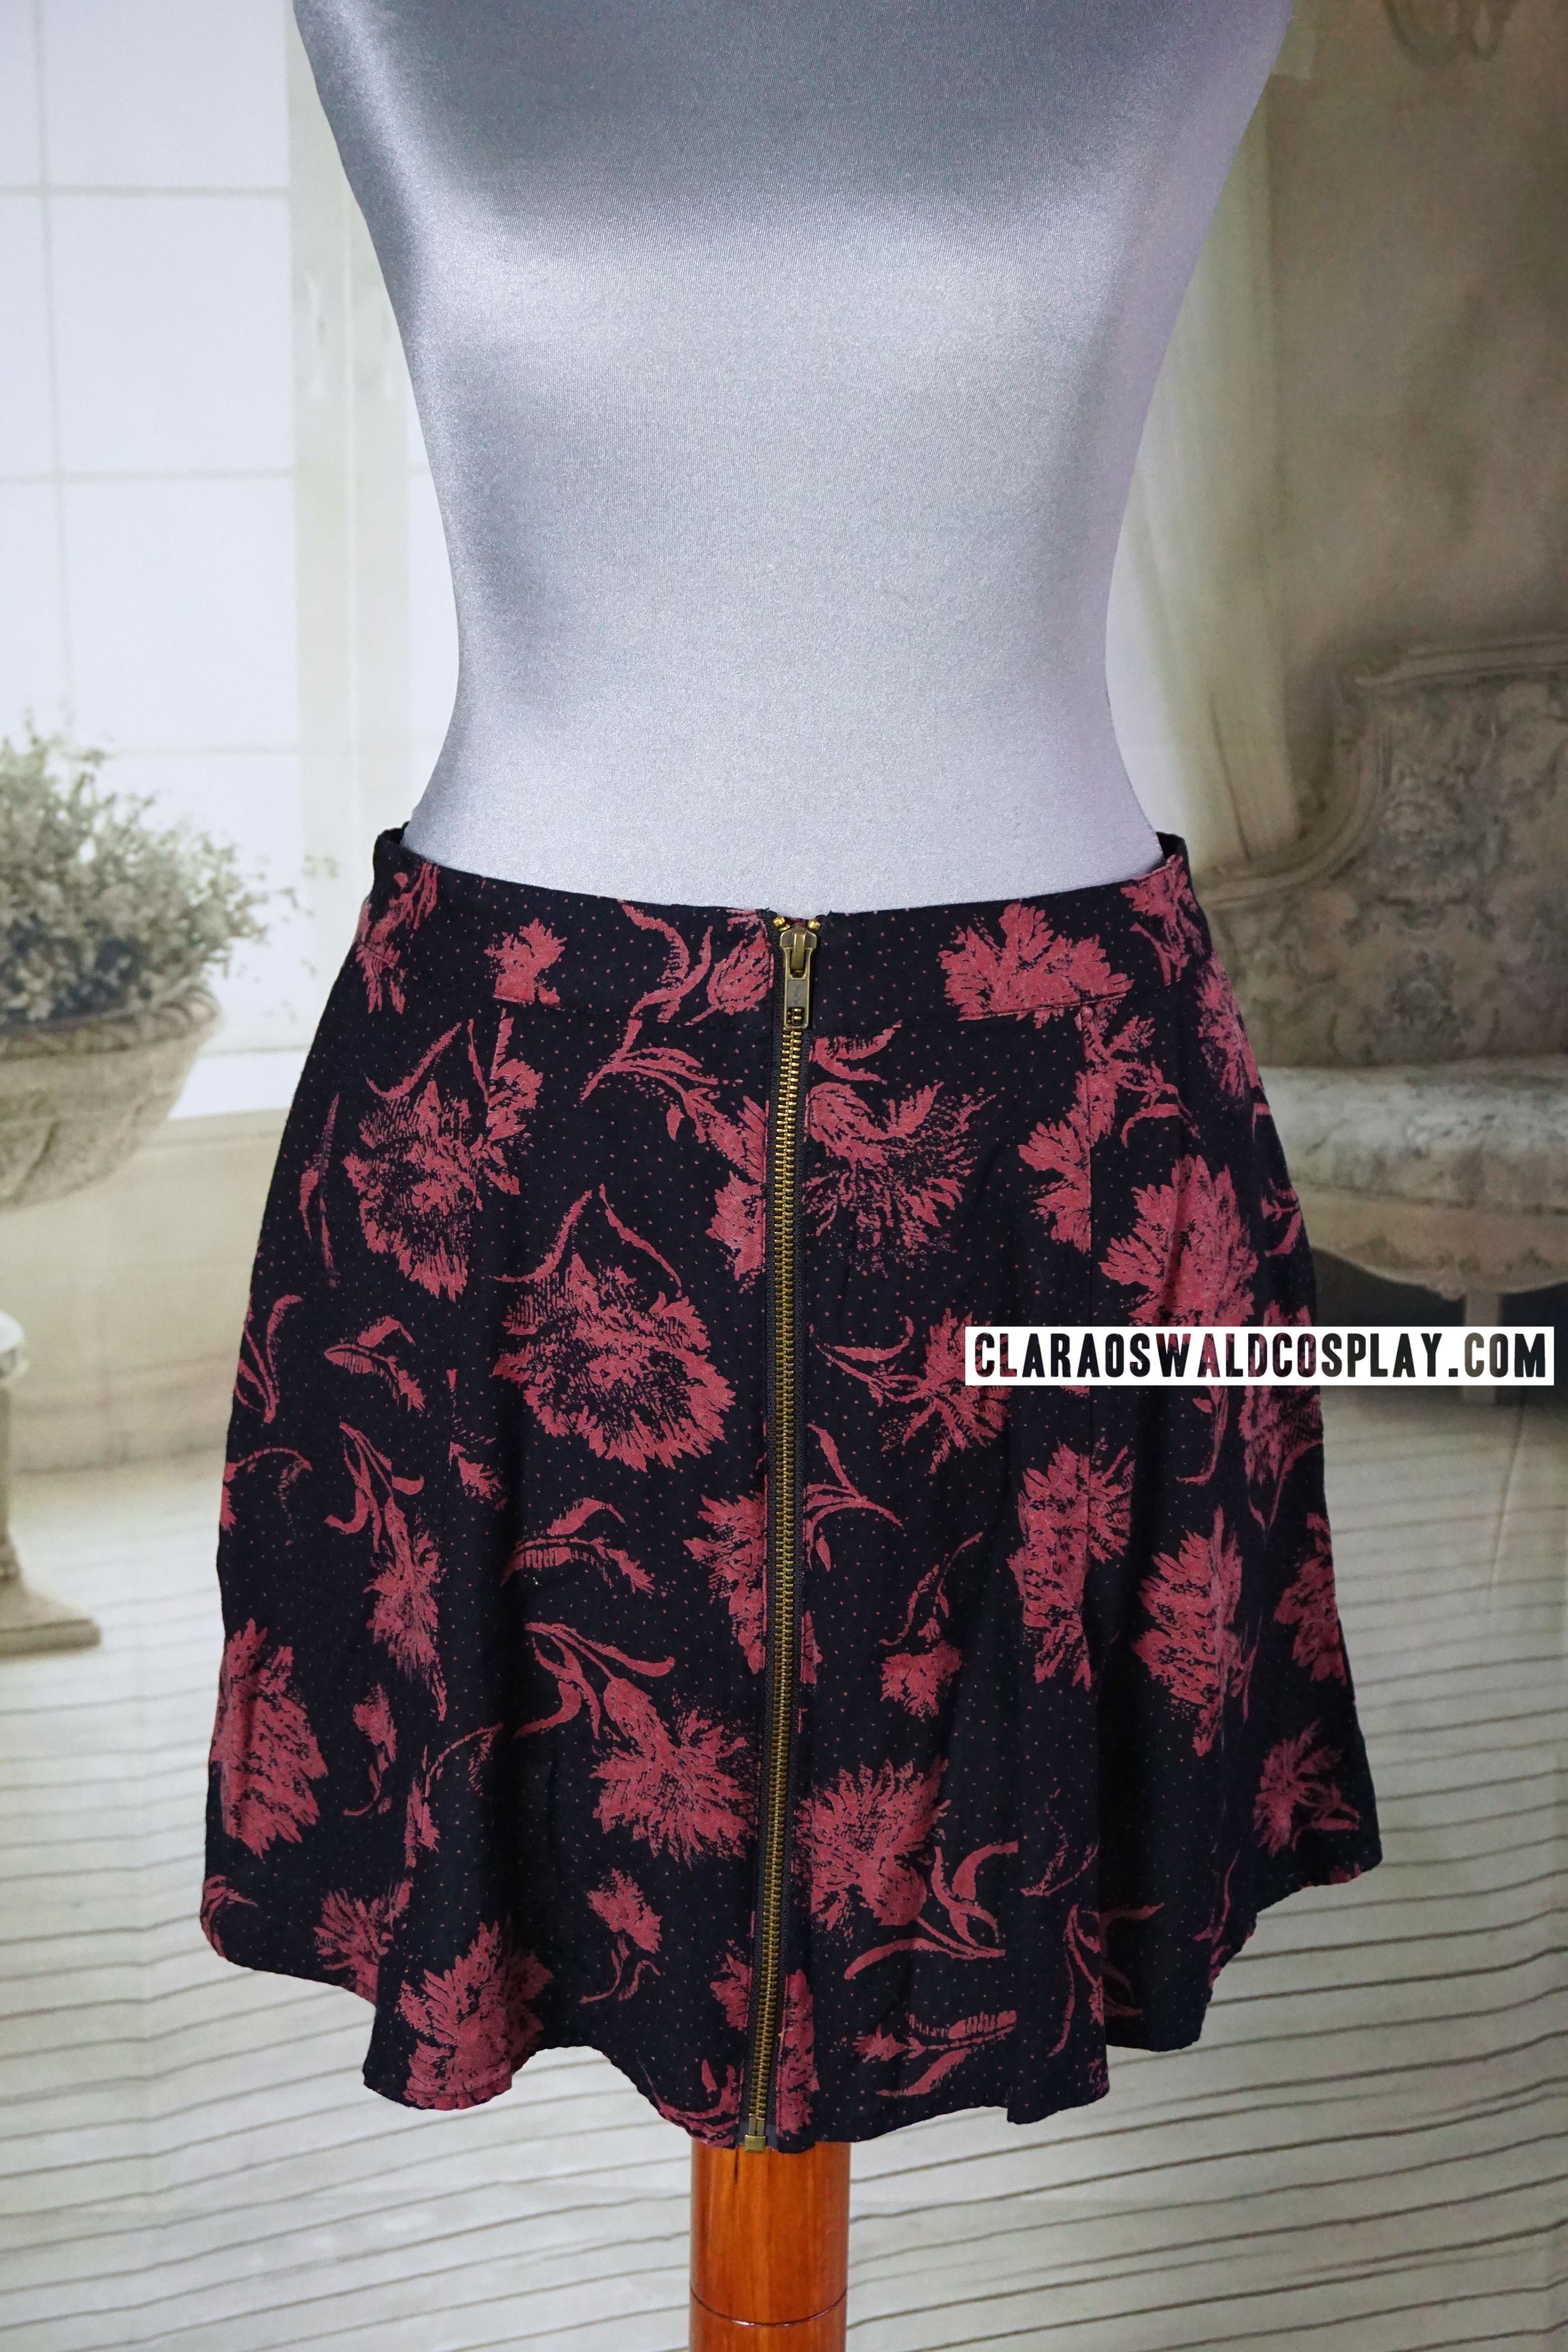 The Urban Outfitters Silence + Noise Zip Carnation Skirt worn by Clara Oswald in Nightmare in Silver